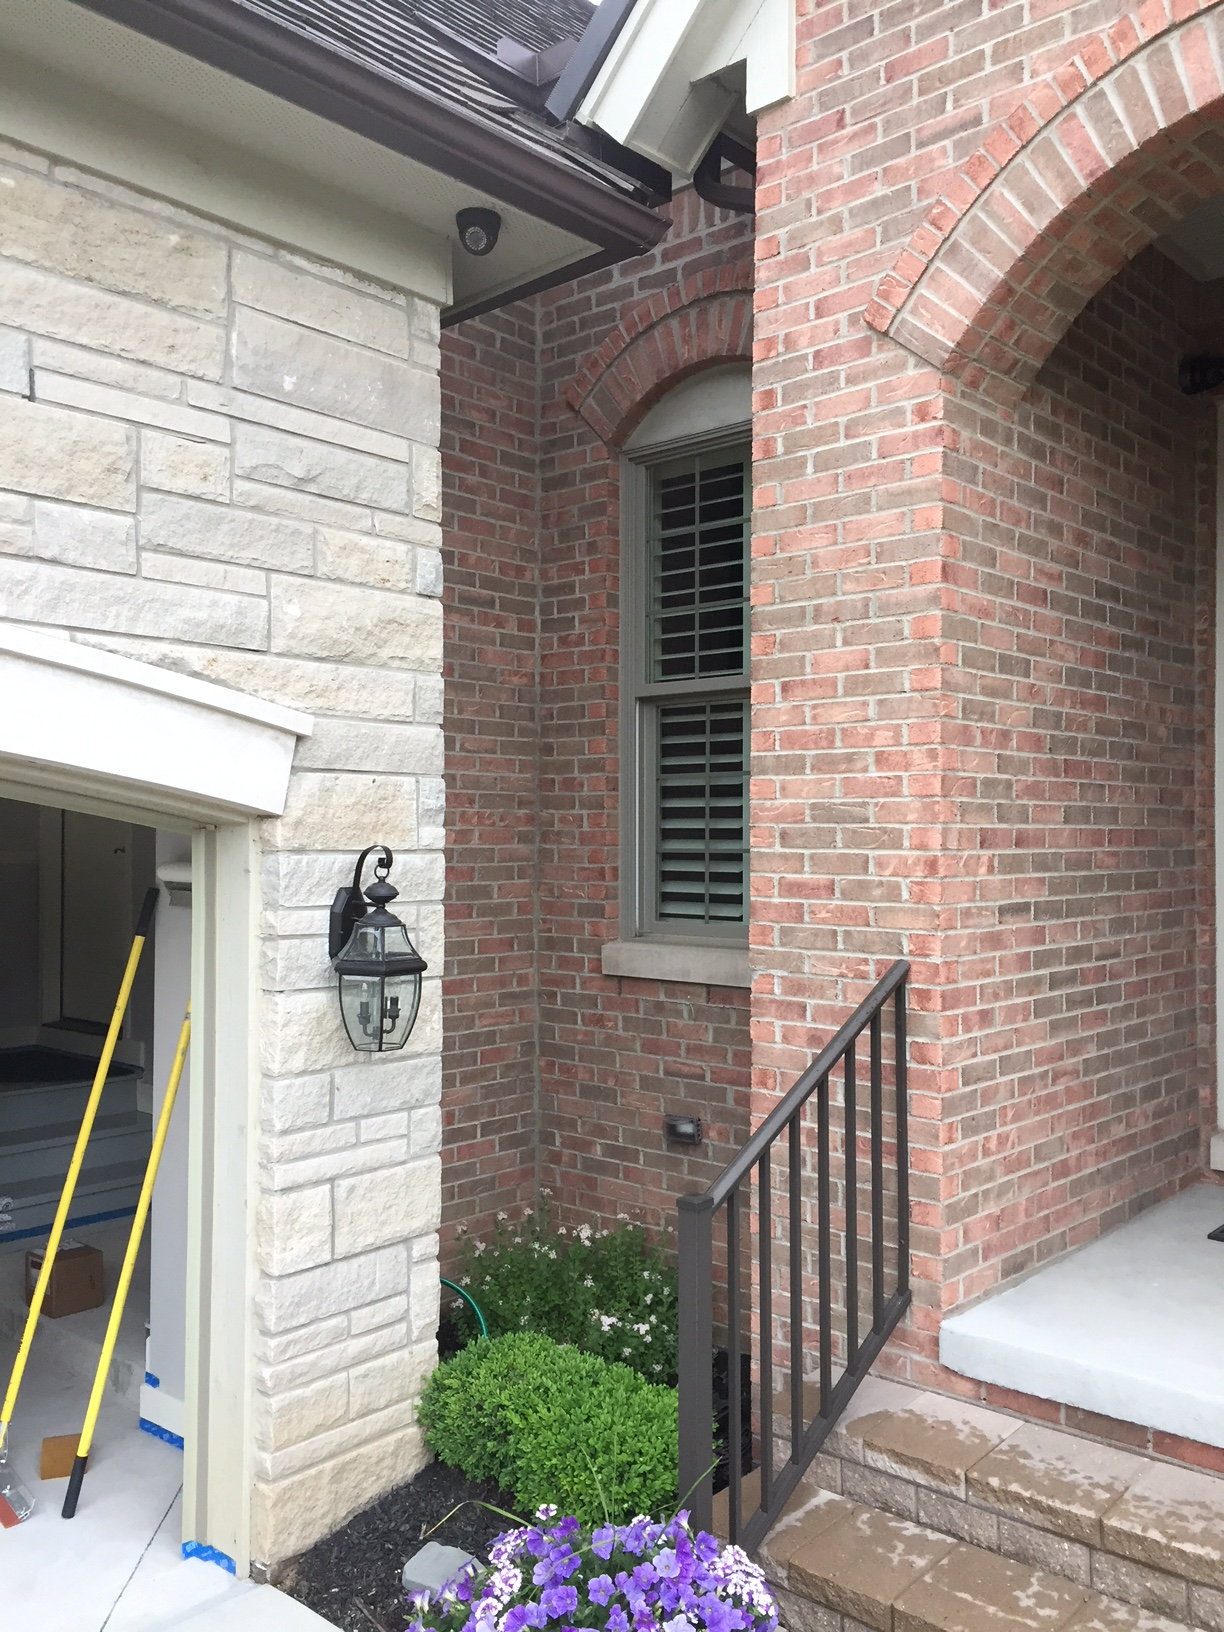 Poor home design allows rainwater from this roof to accumulate in this cubbyhole between the house and garage where it cannot evaporate, forcing it to drain under the driveway and garage and cause a concrete moisture problem.